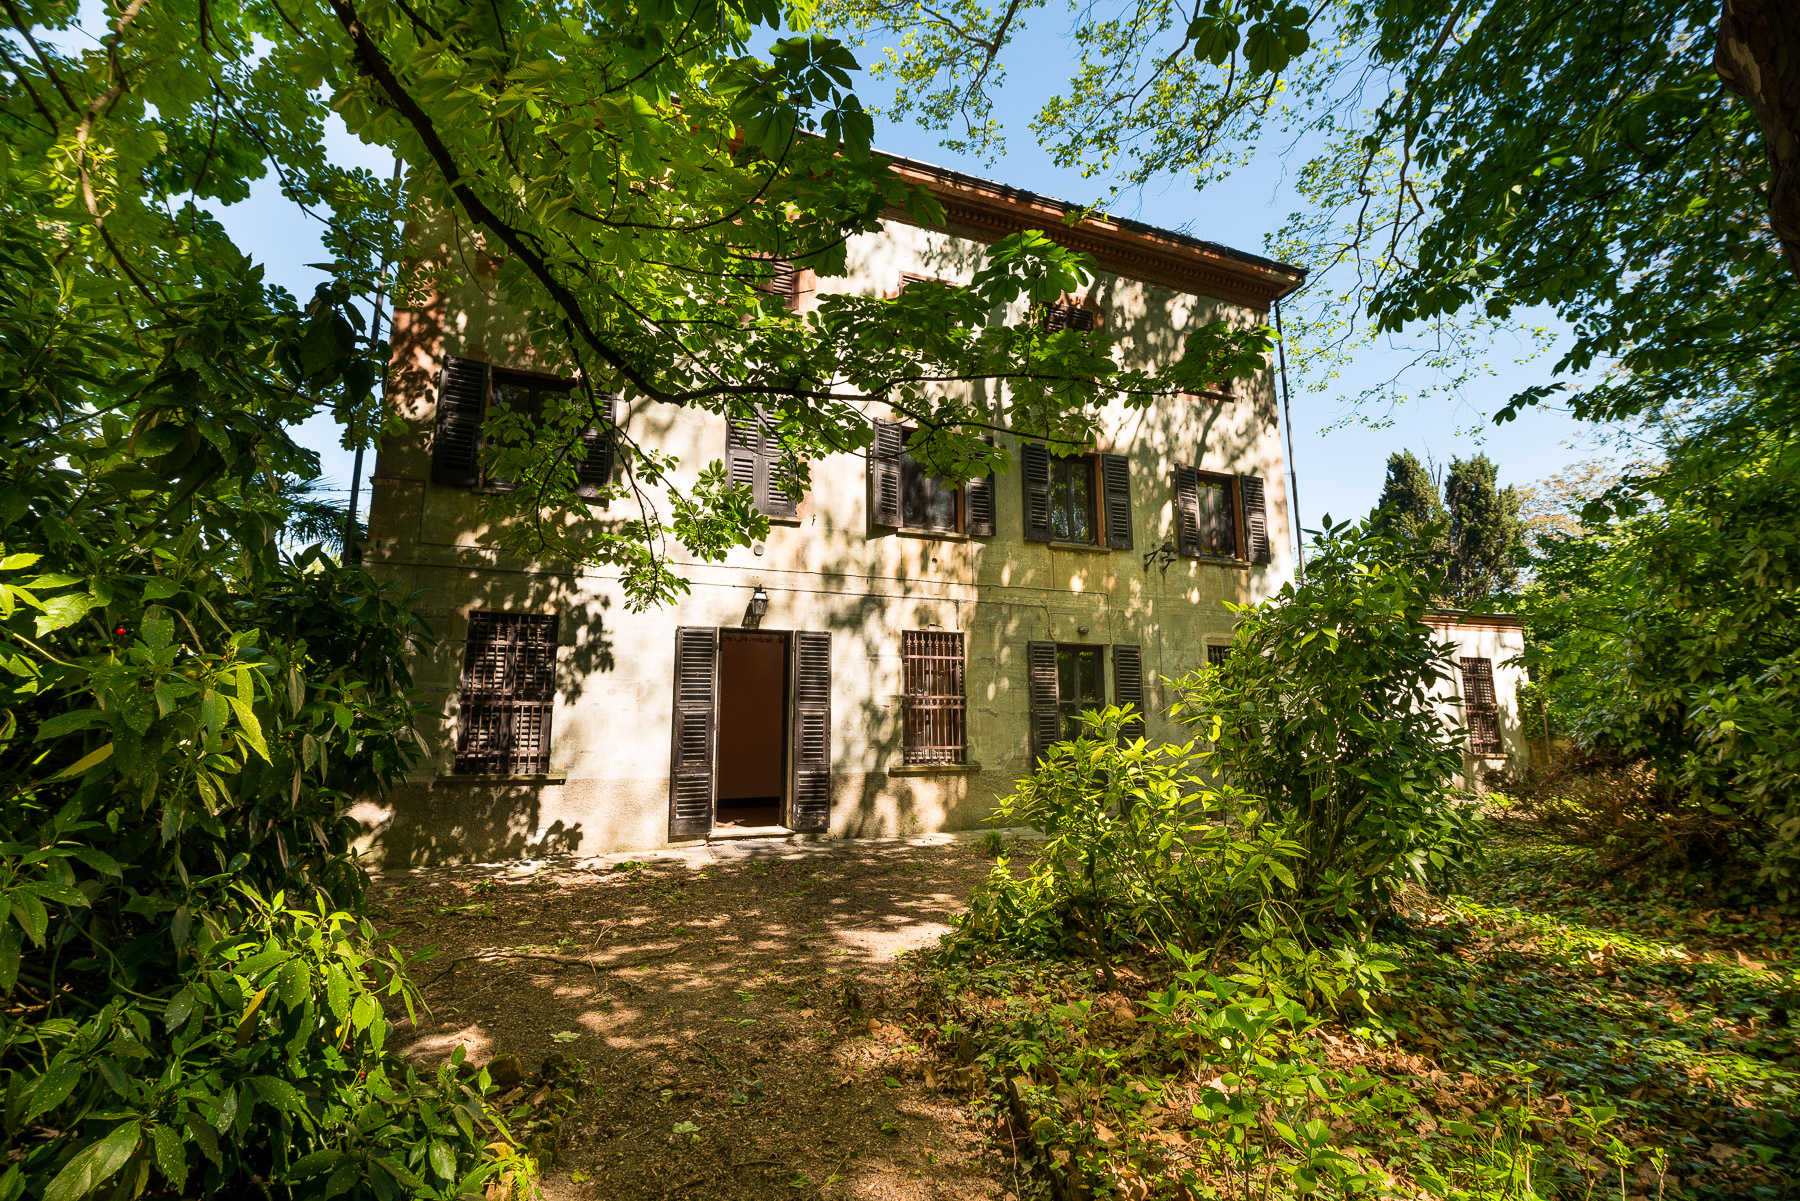 Enchanting patrician villa in Monferrato